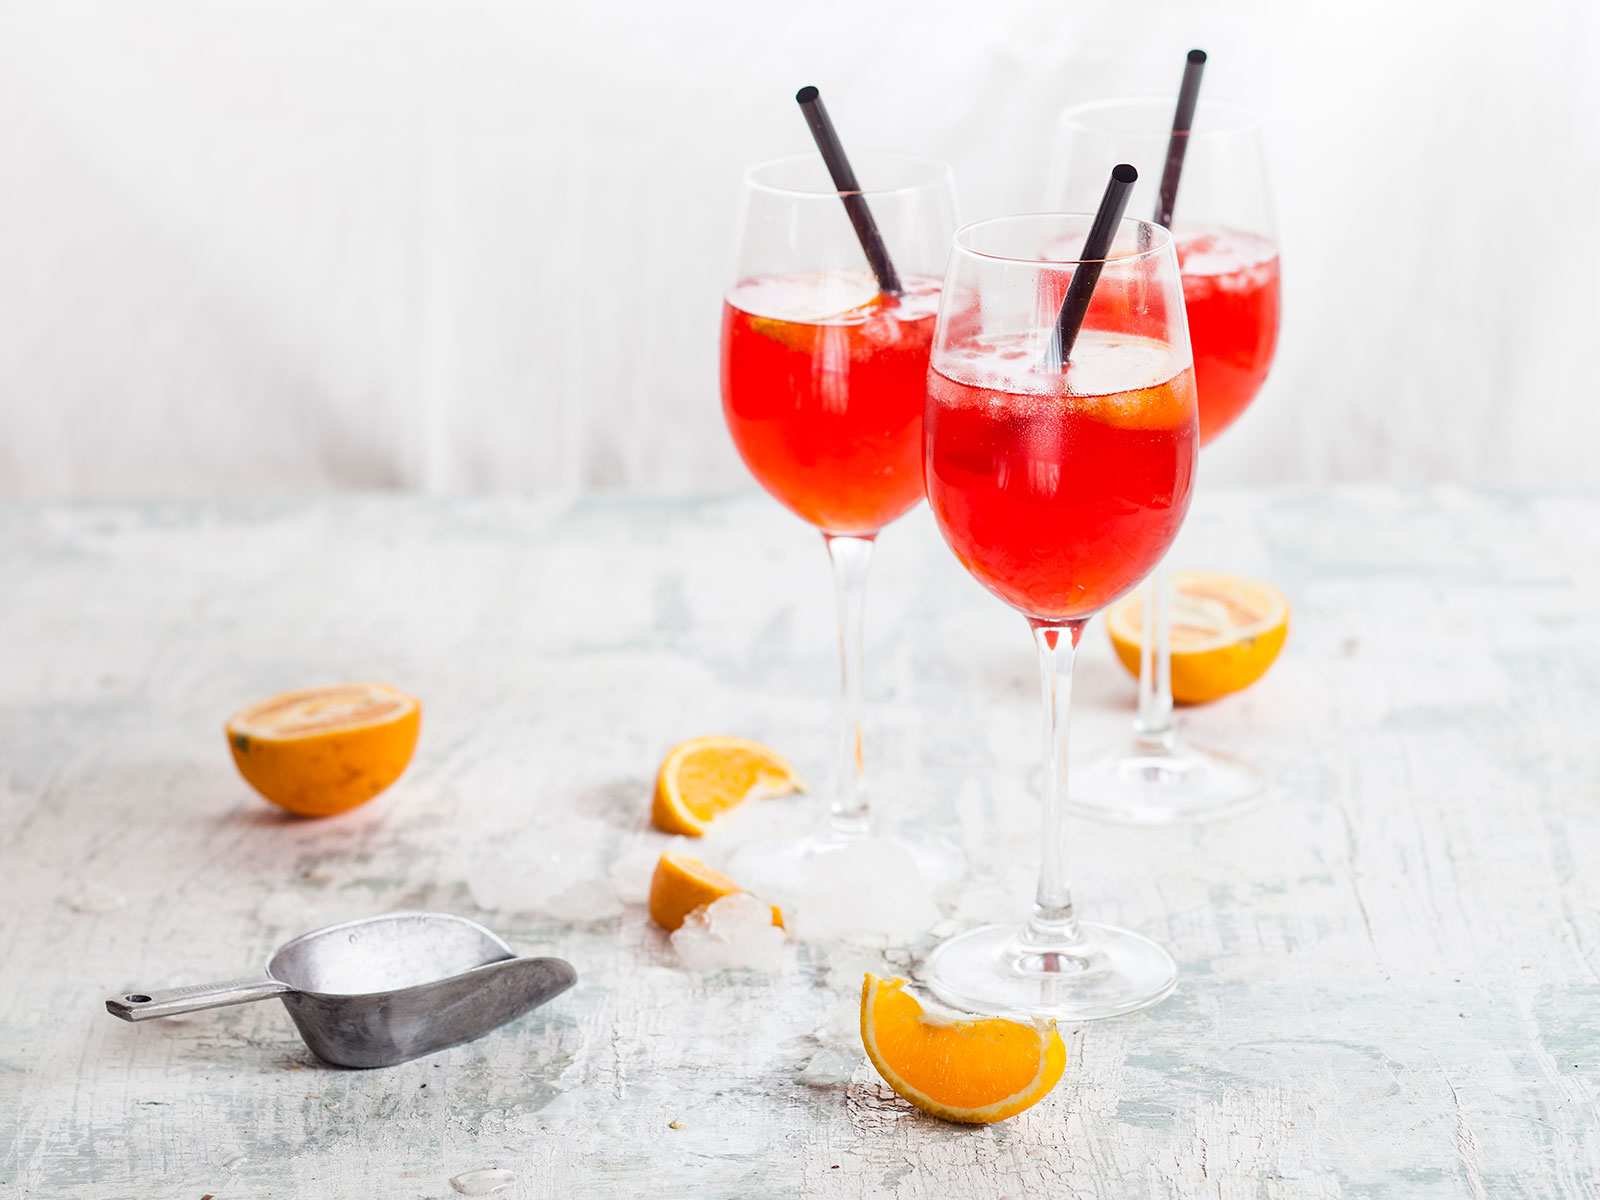 5 Places to Drink an Aperol Spritz in Rome Right Now